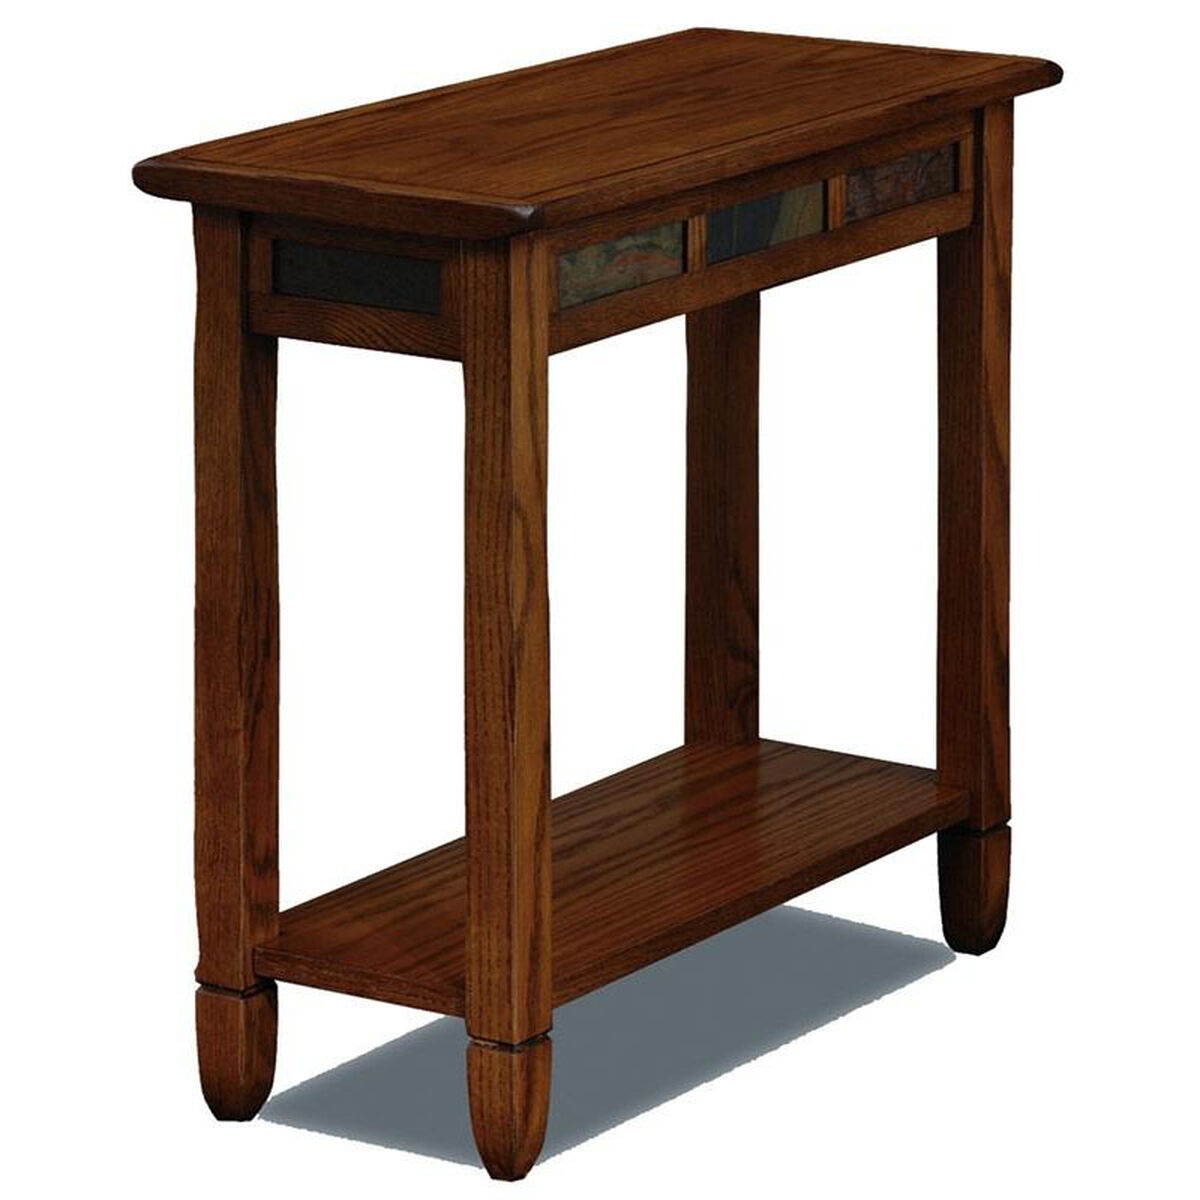 Leick furniture favorite finds 12 39 39 w x 24 39 39 h rustic end for 12 x 12 accent table